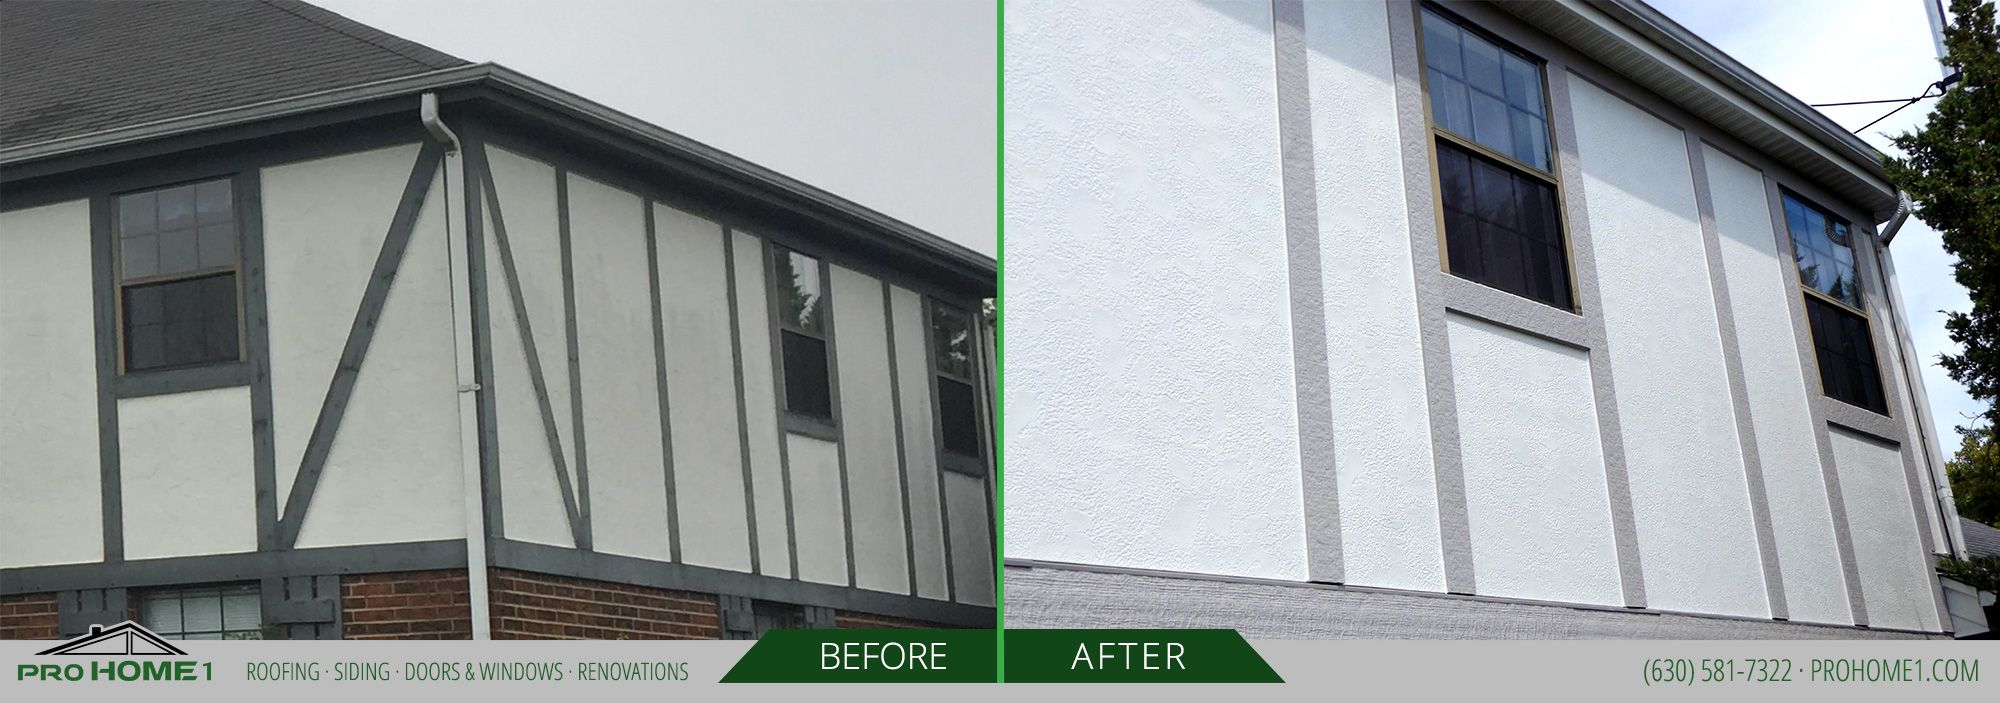 Here S A James Hardie Stucco Board Panels And Batten Siding Installation In Summer 2016 On A Condo Multi Family Building Installing Siding Wood Dale Remodel